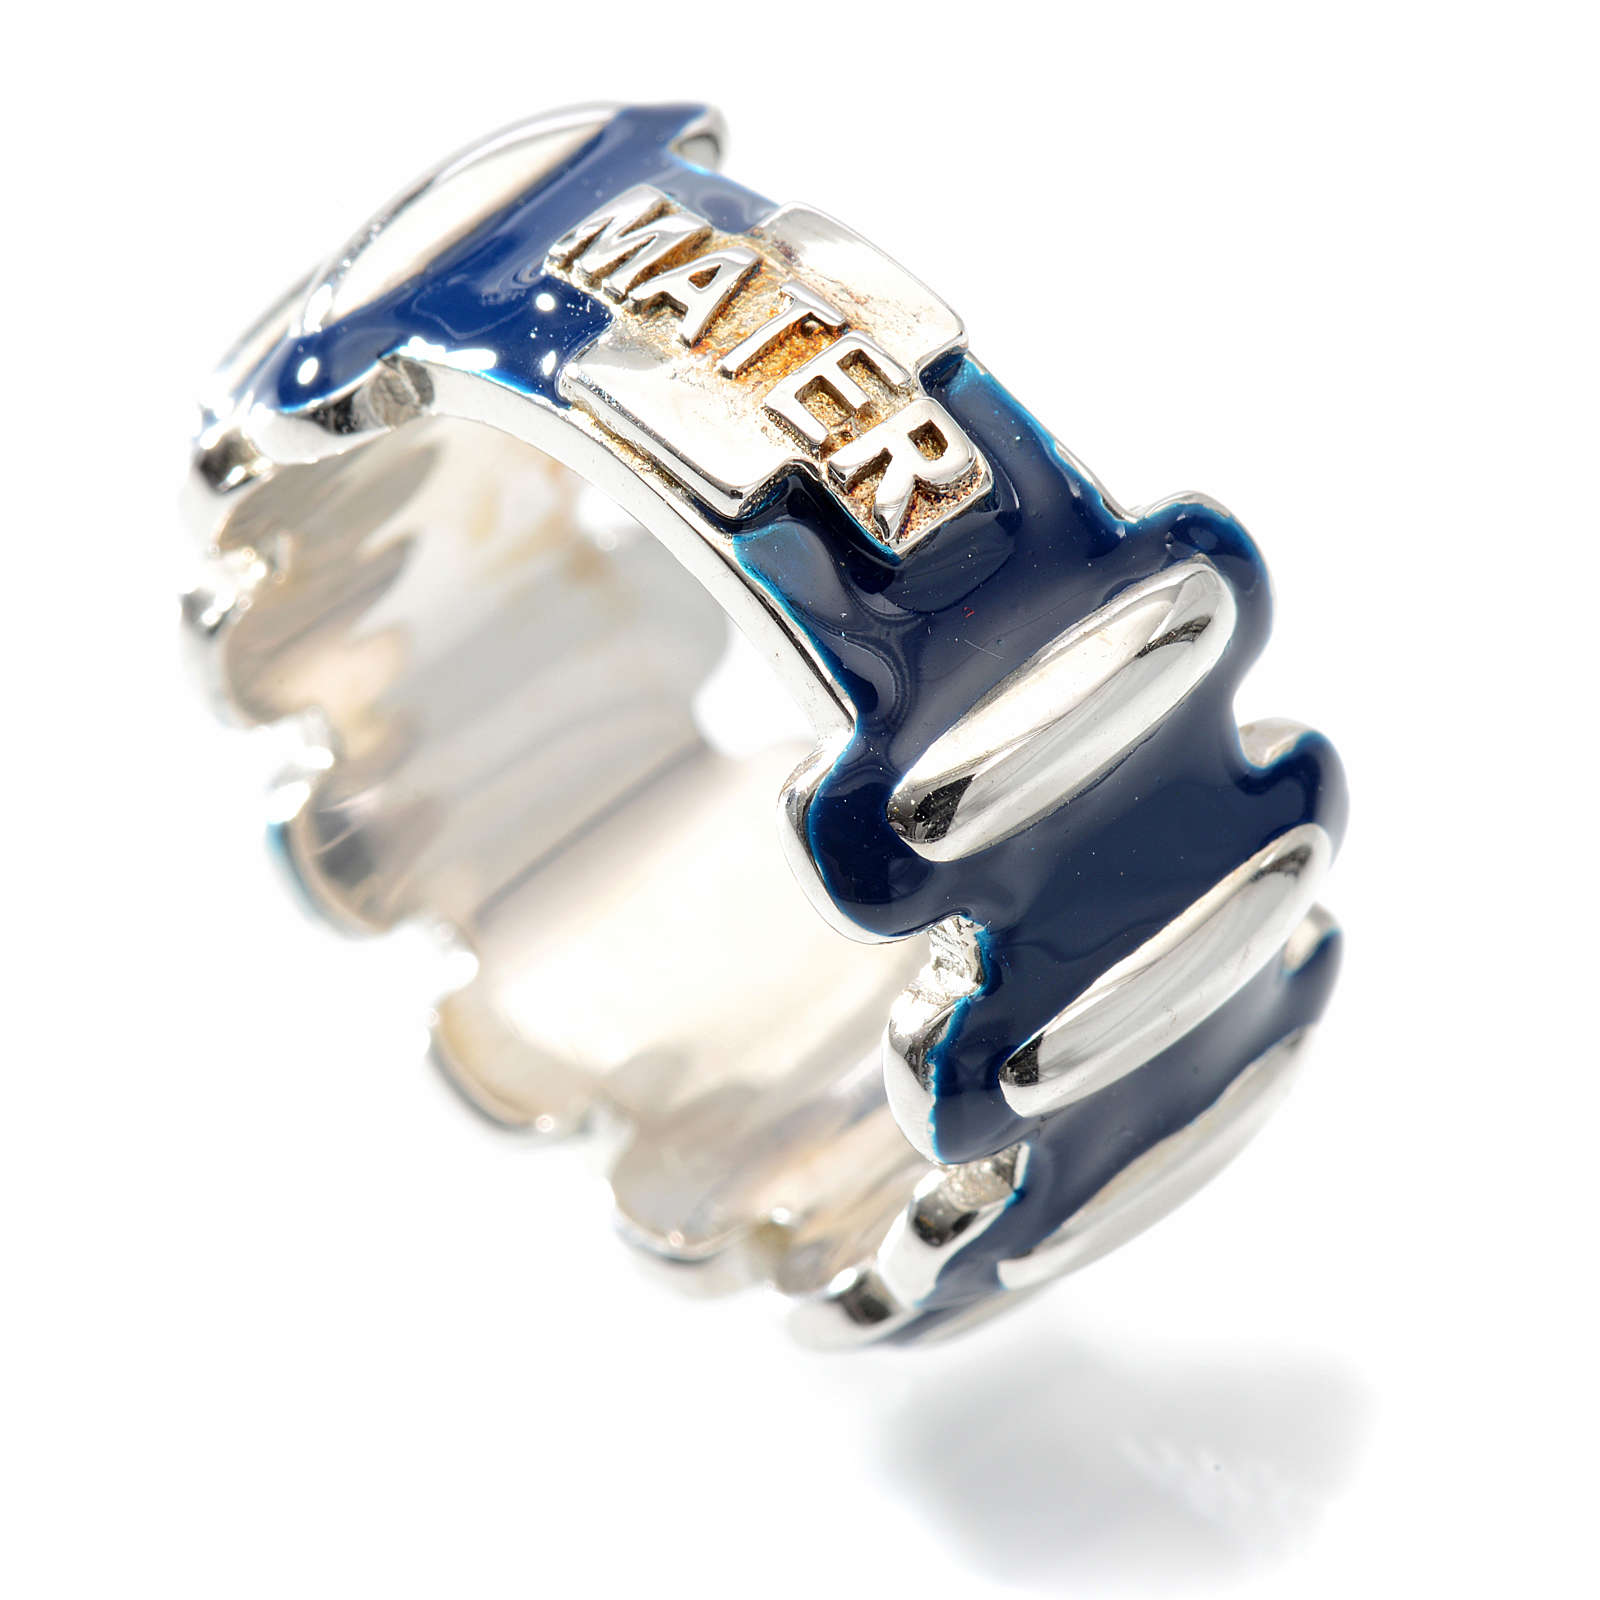 Rosary ring in silver 925 with blue enamel, MATER 3